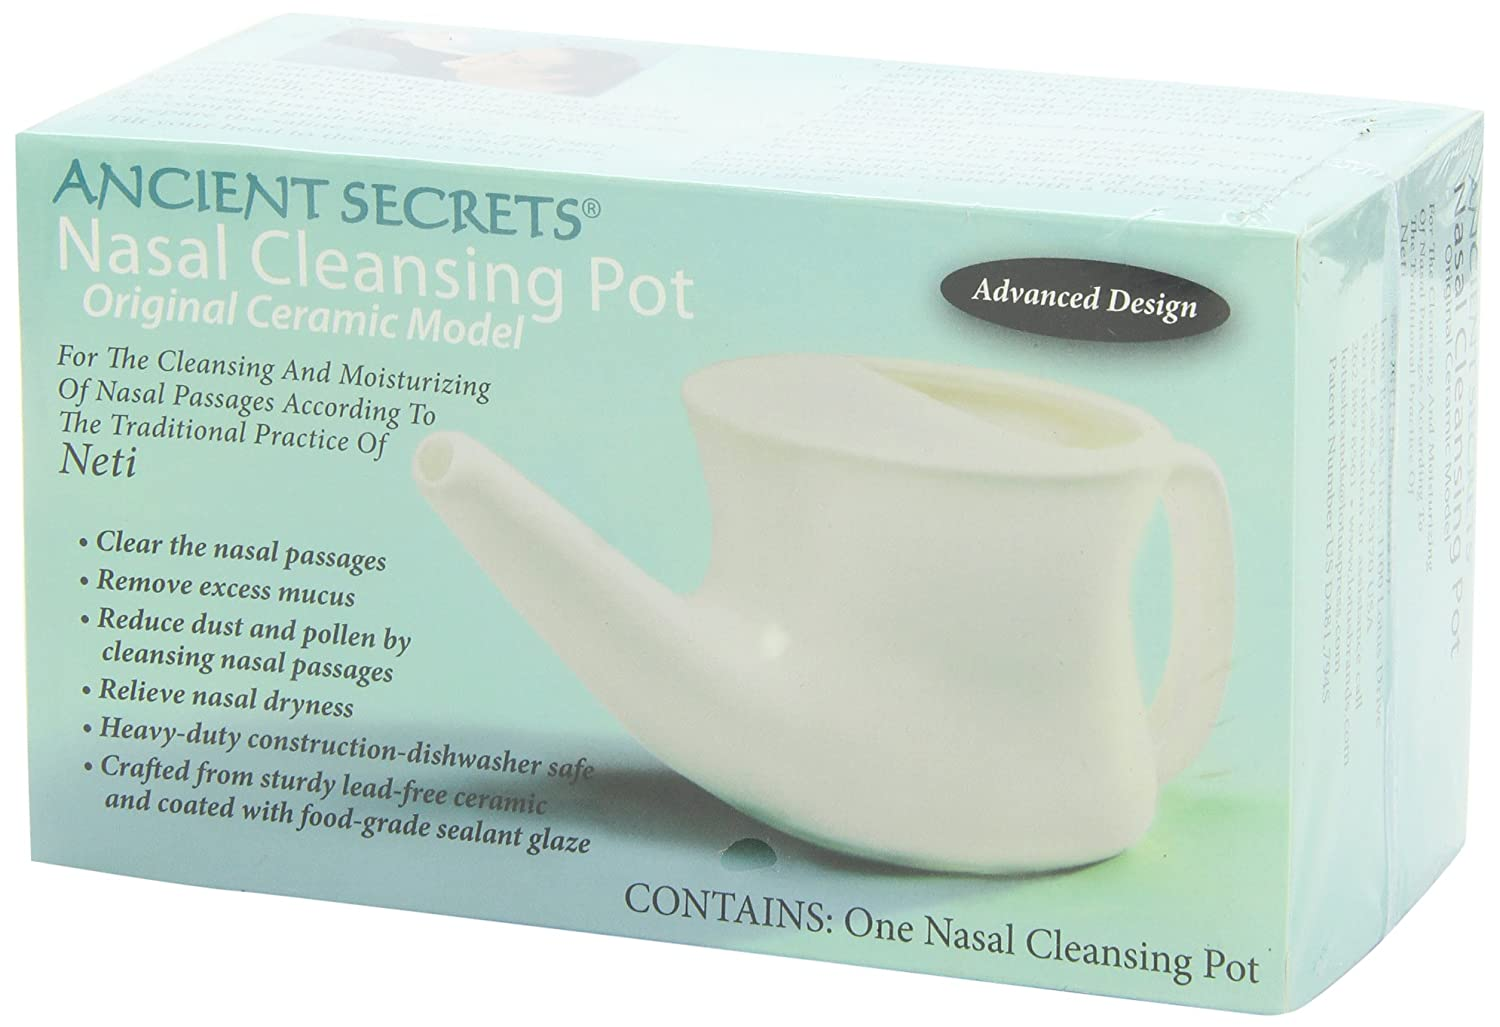 Ancient Secrets Ceramic Nasal Cleansing Pot, 1 Neti Pot